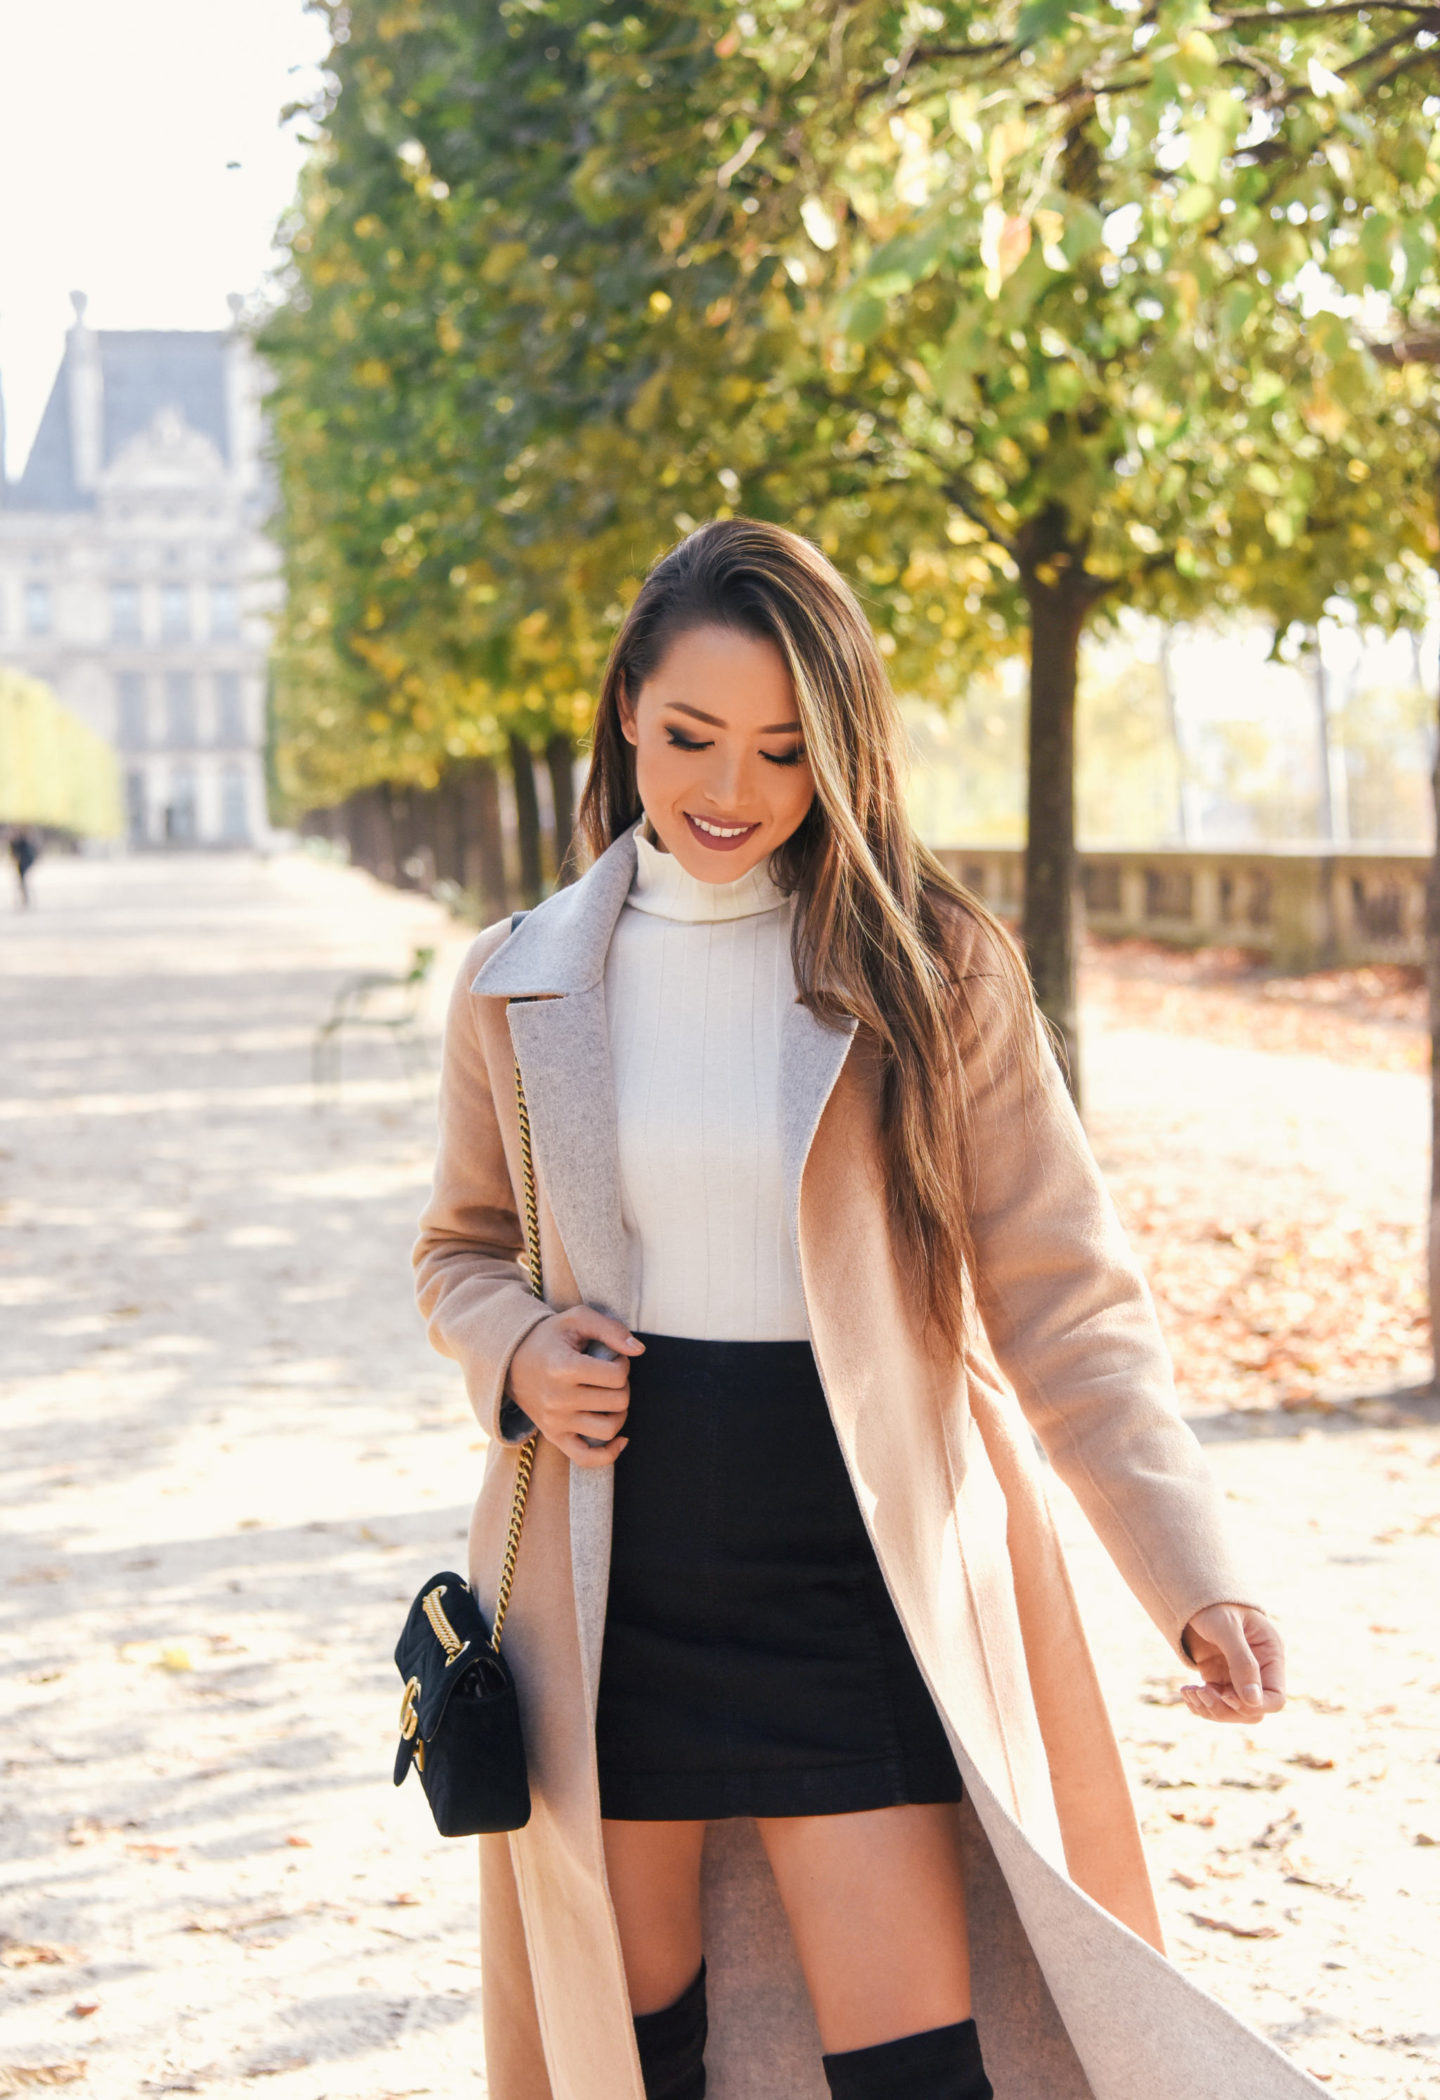 trench, paris, outfit, fashion, banana republic coat, camel coat, turtleneck, miniskirt, over the knee boots